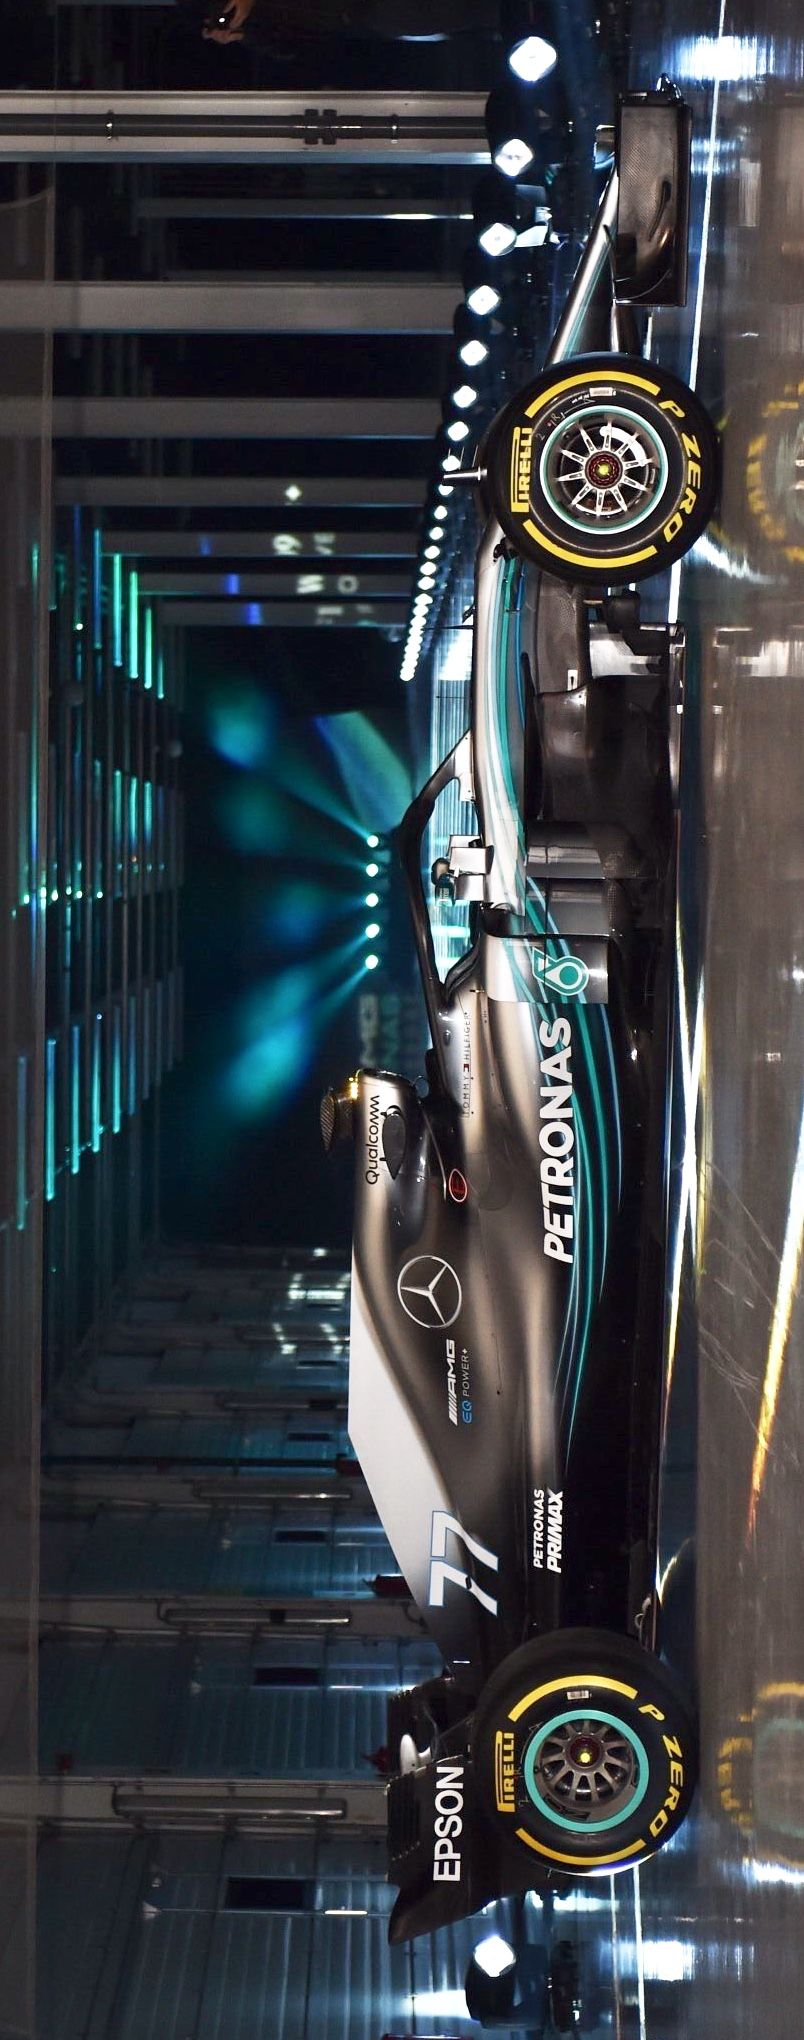 2018/2/23:Twitter: @LaurenNBaily: The new @MercedesAMGF1 is gorgeous! Hope it has the speed ...